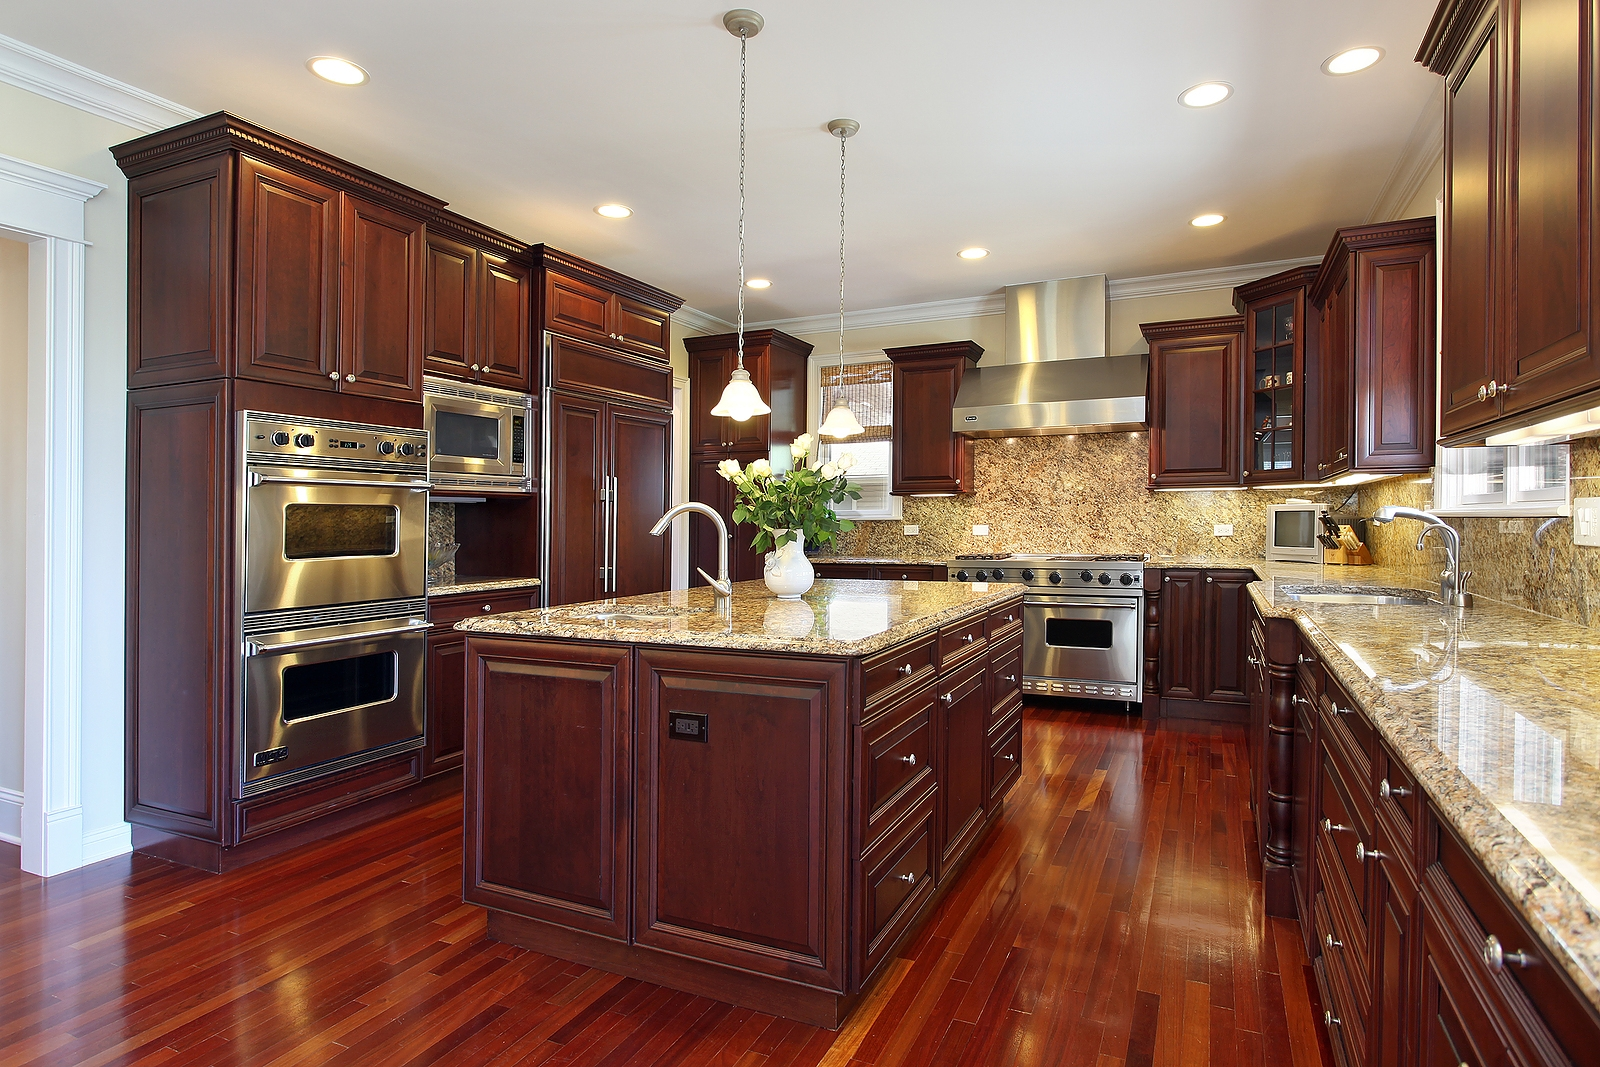 Pictures Of Cherry Wood Kitchen Cabinets